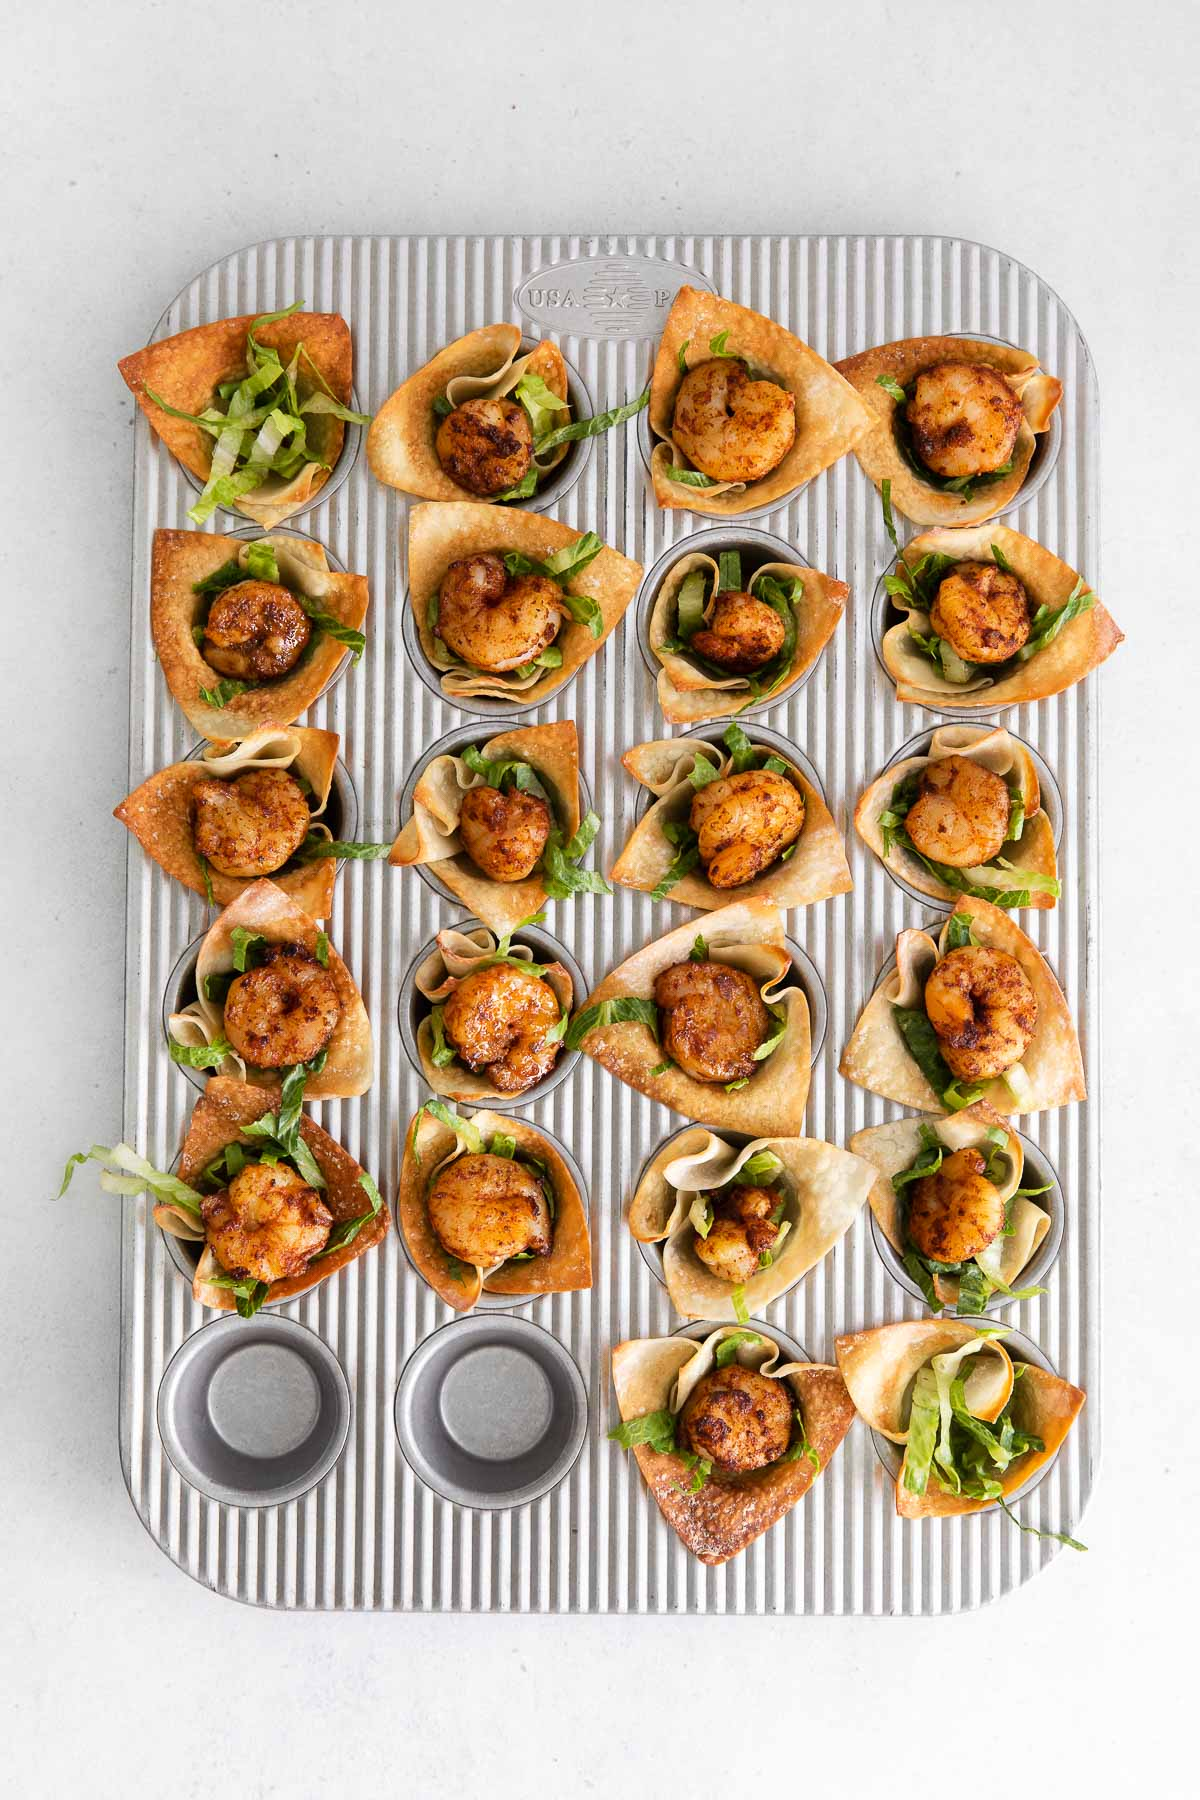 mini muffin tin filled with baked wonton wrappers each topped with shredded lettuce and a shrimp